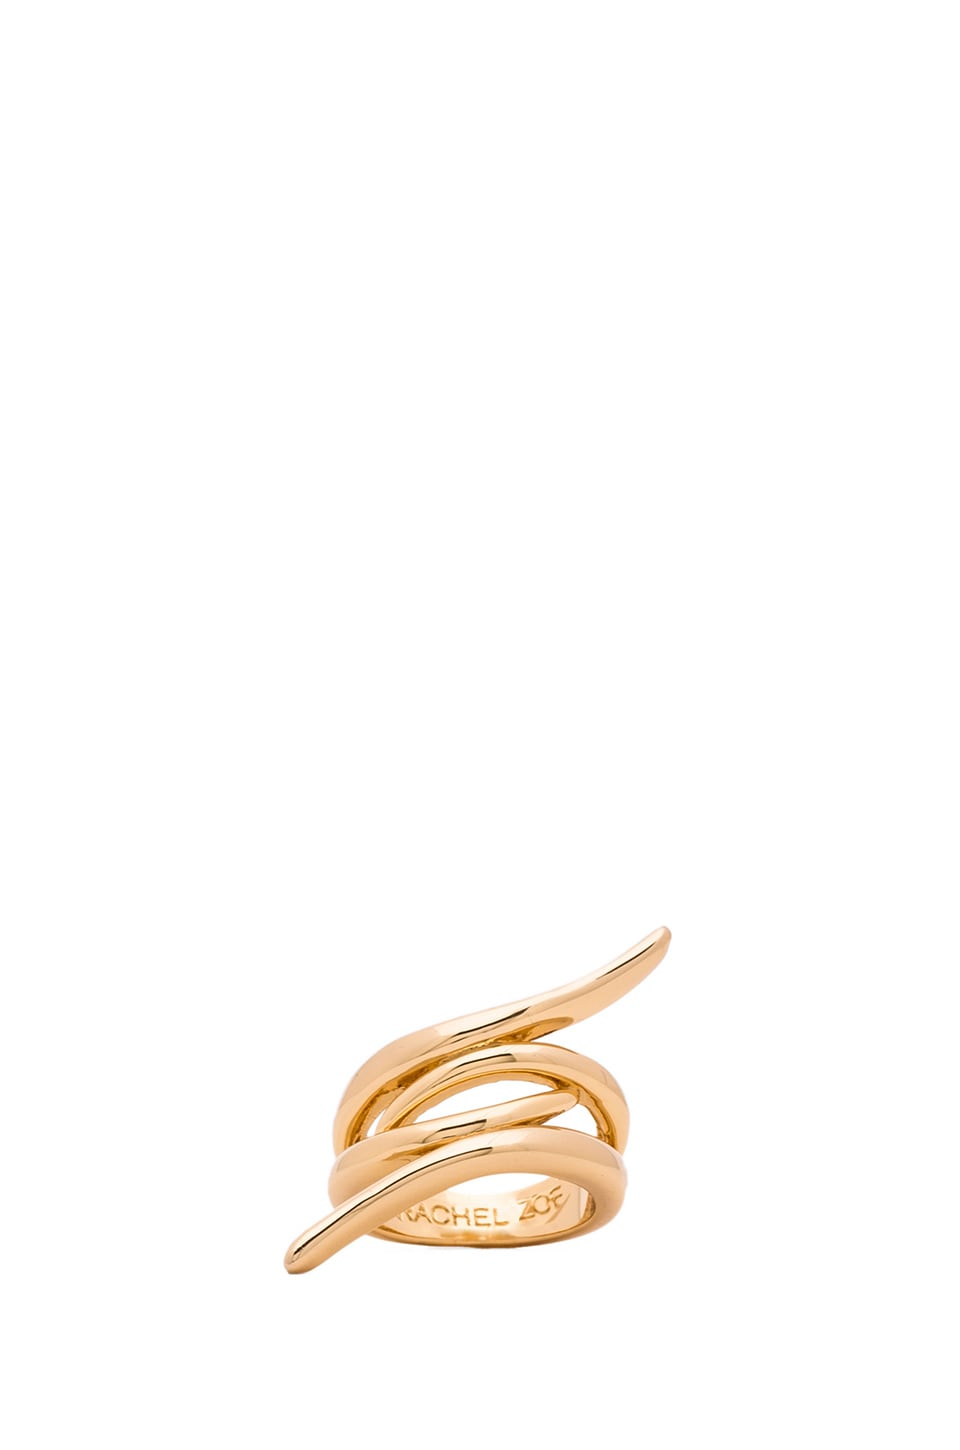 RACHEL ZOE Metal Pod Crossover Ring in Gold